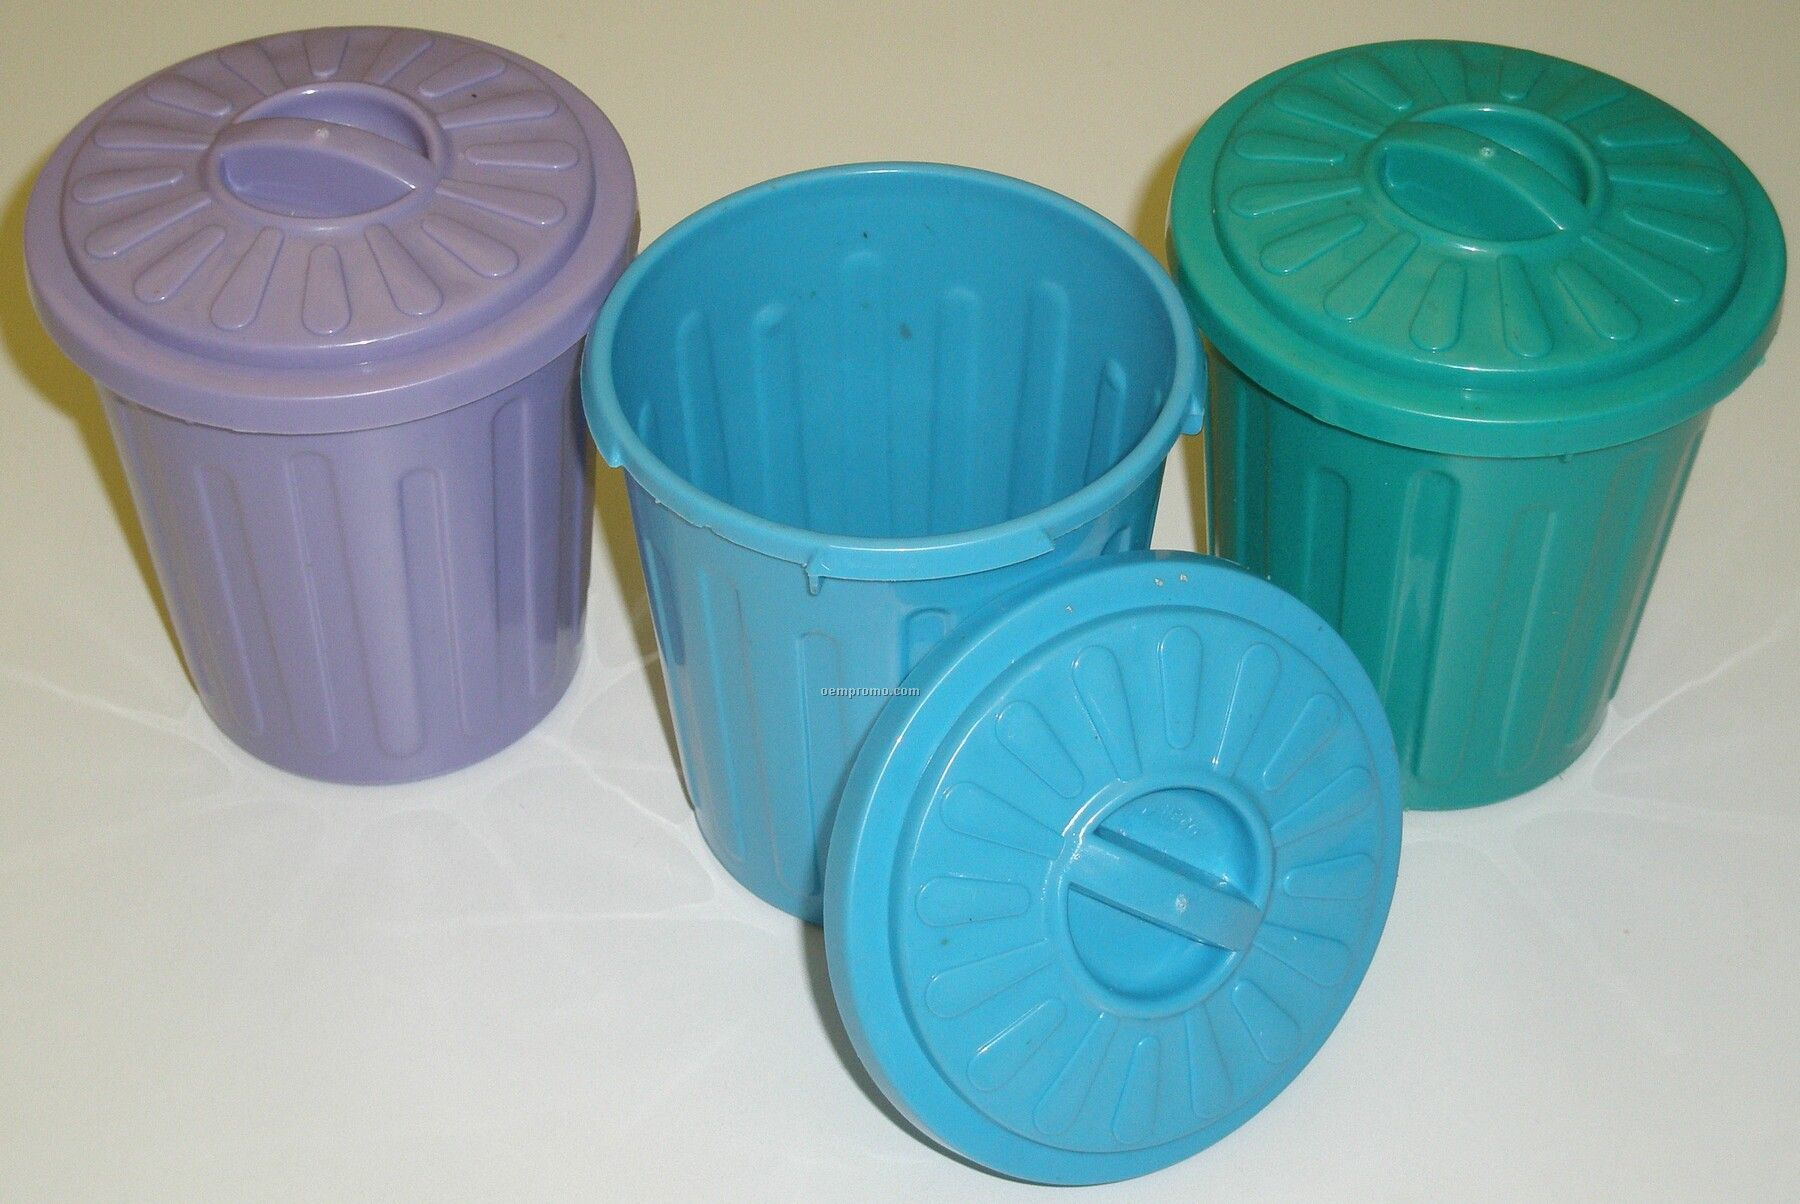 Trash cans china wholesale trash cans - Small trash can with lid ...